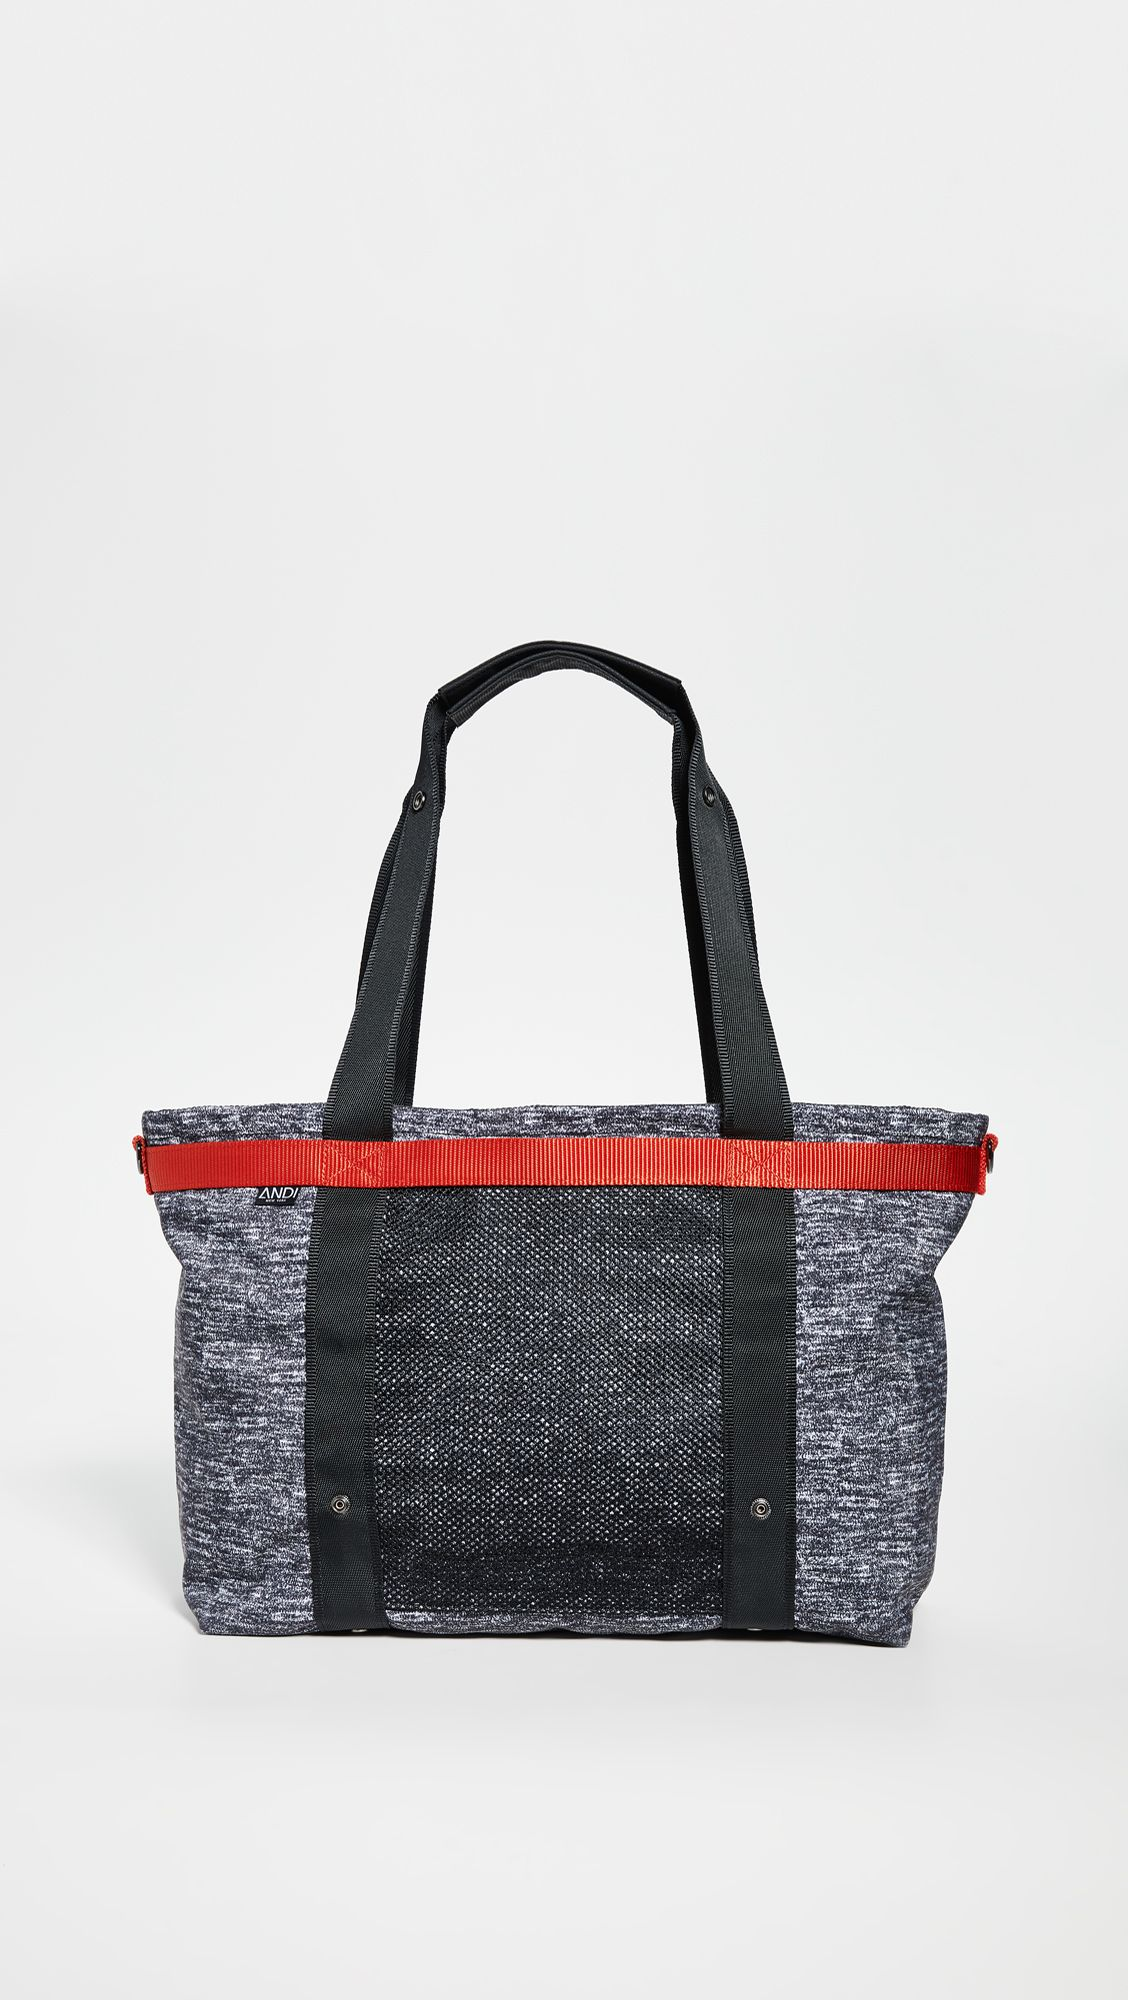 ANDI The Andi Tote SAVE UP TO 40 SURPRISE SALE